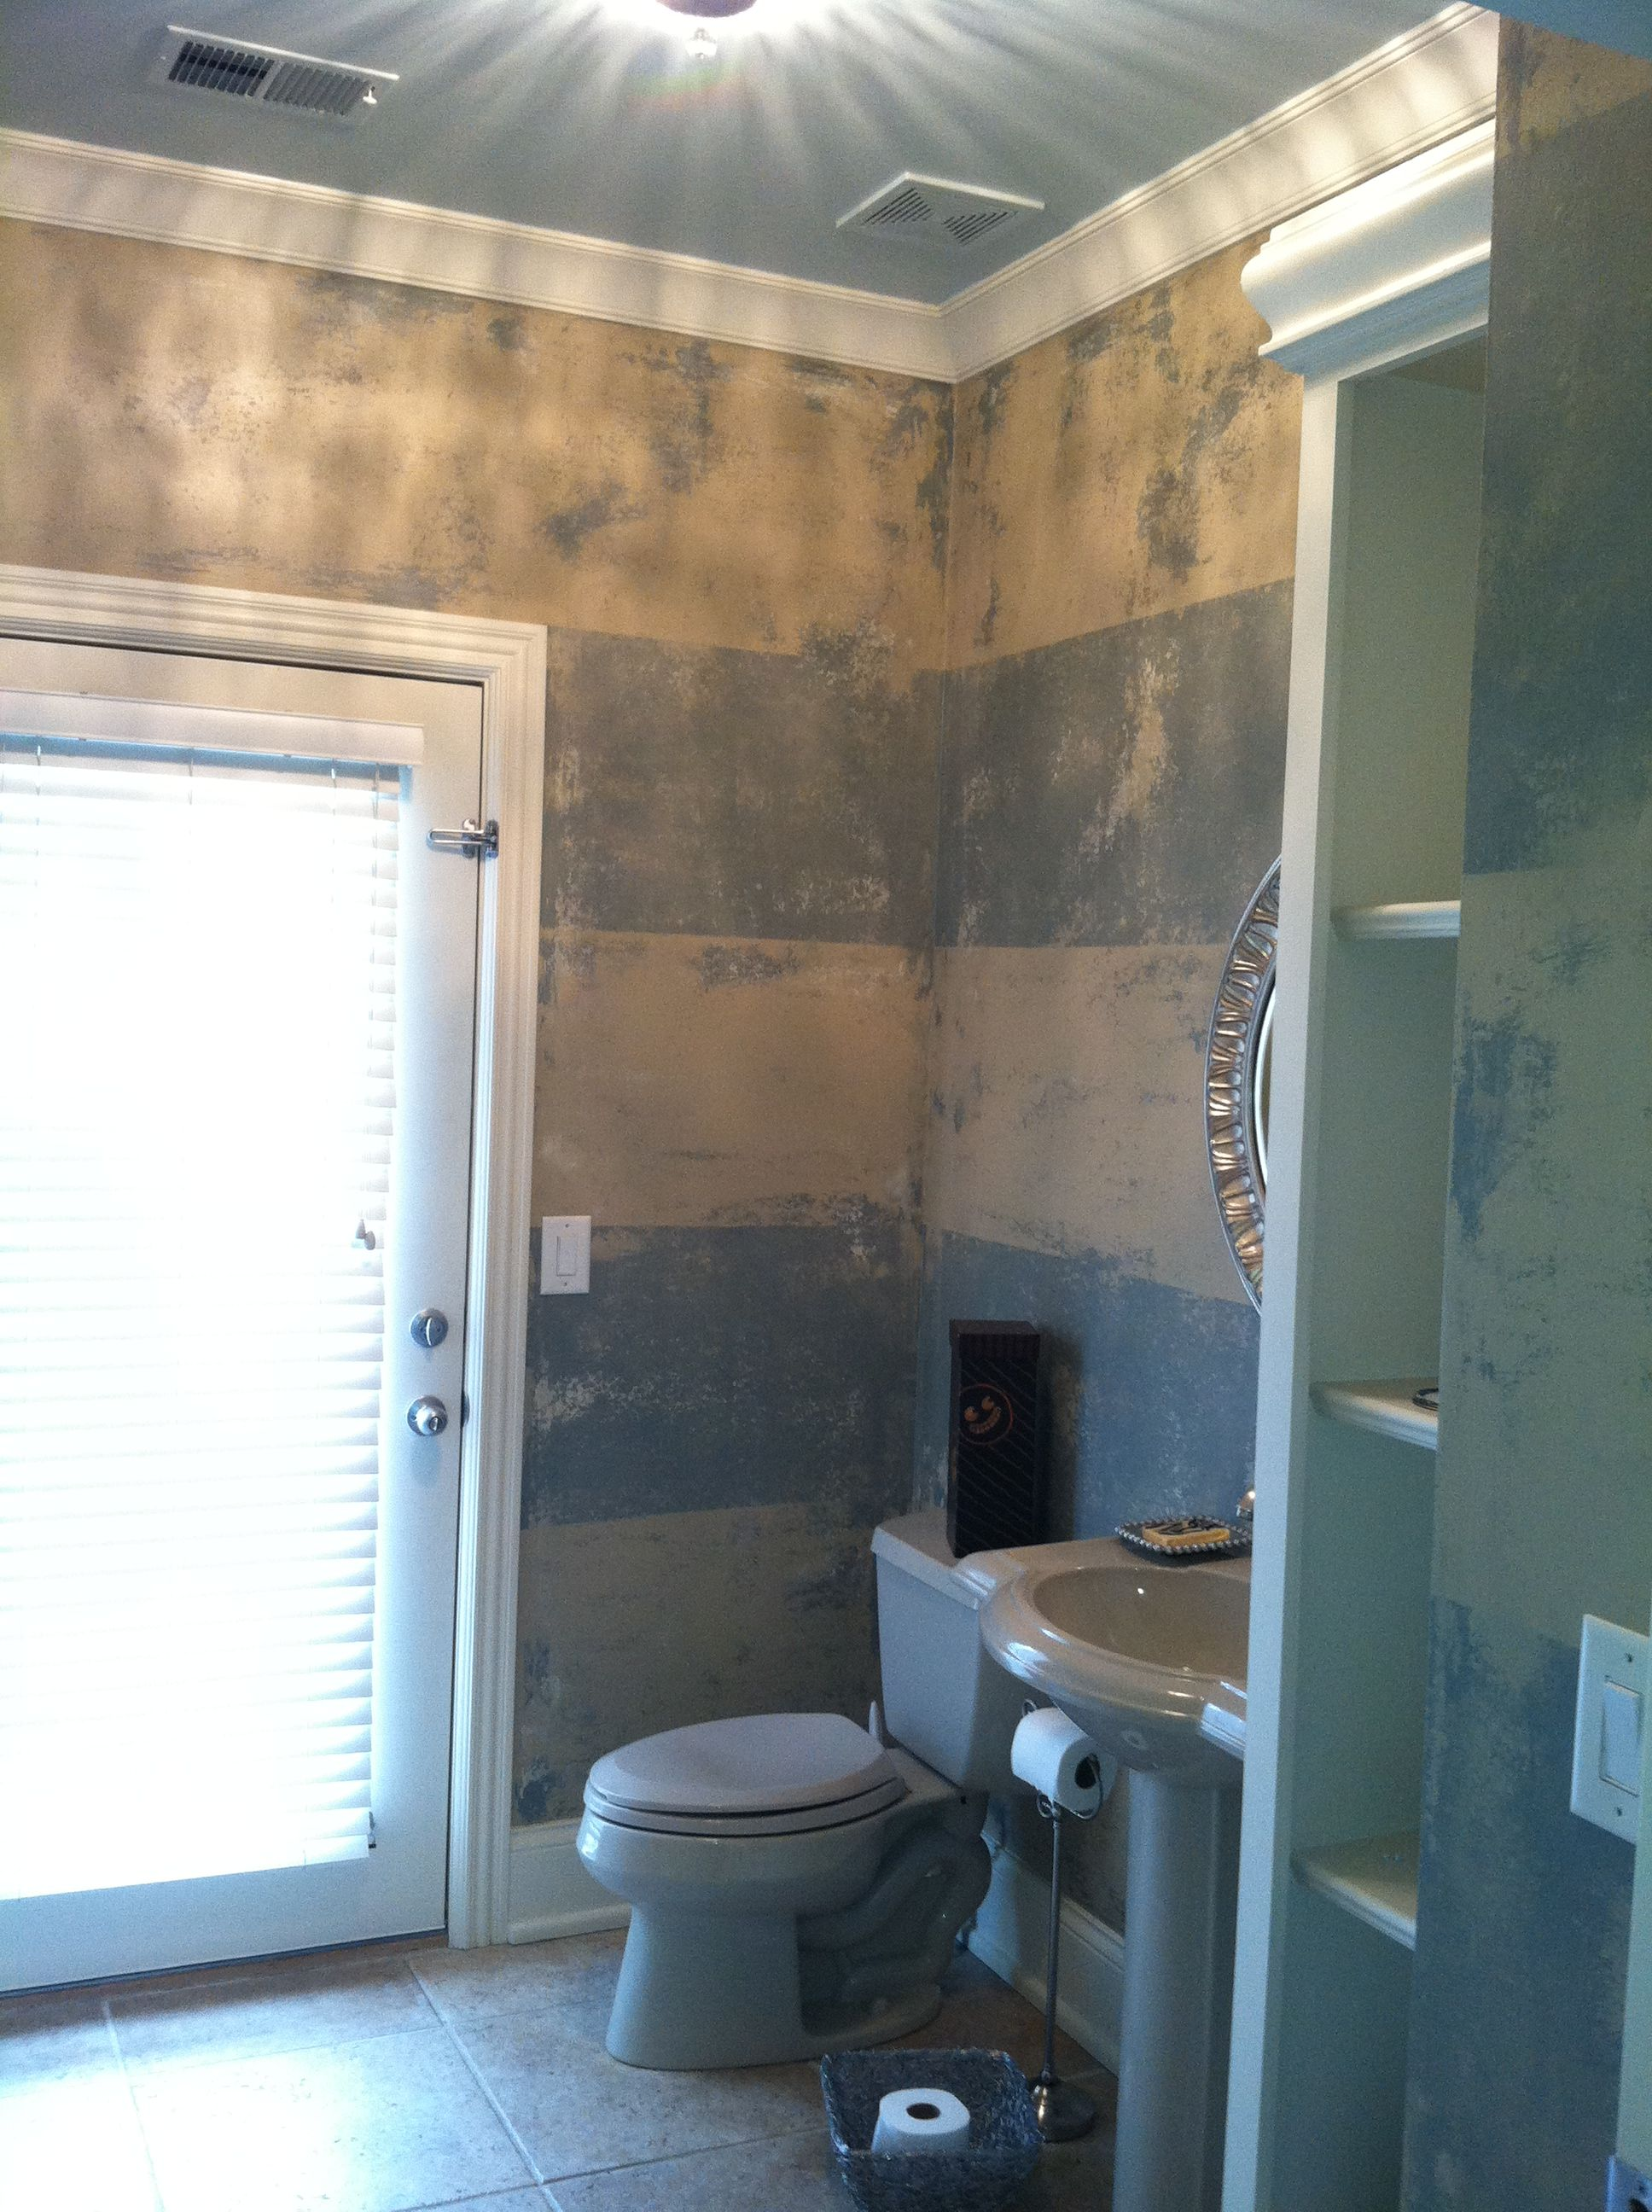 Give your furniture an antiqued or distressed look ladulcelavie - 1000 Images About Painting On Pinterest Diy Headboards How To Paint And Colors